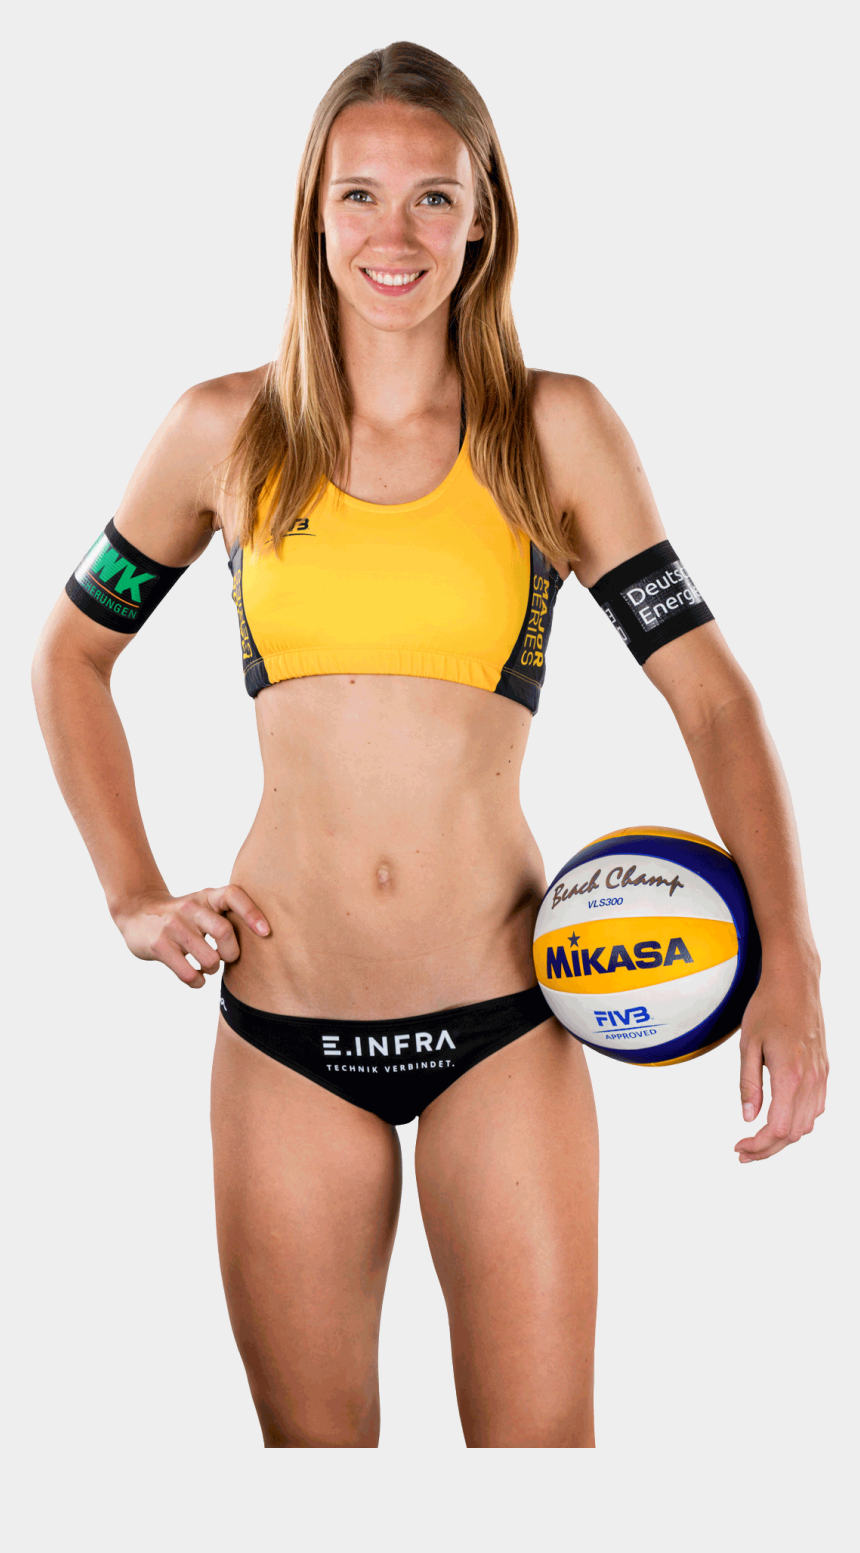 female volleyball player clipart, Cartoons - Sandra Ittlinger - Volleyball - Volleyball Player Png